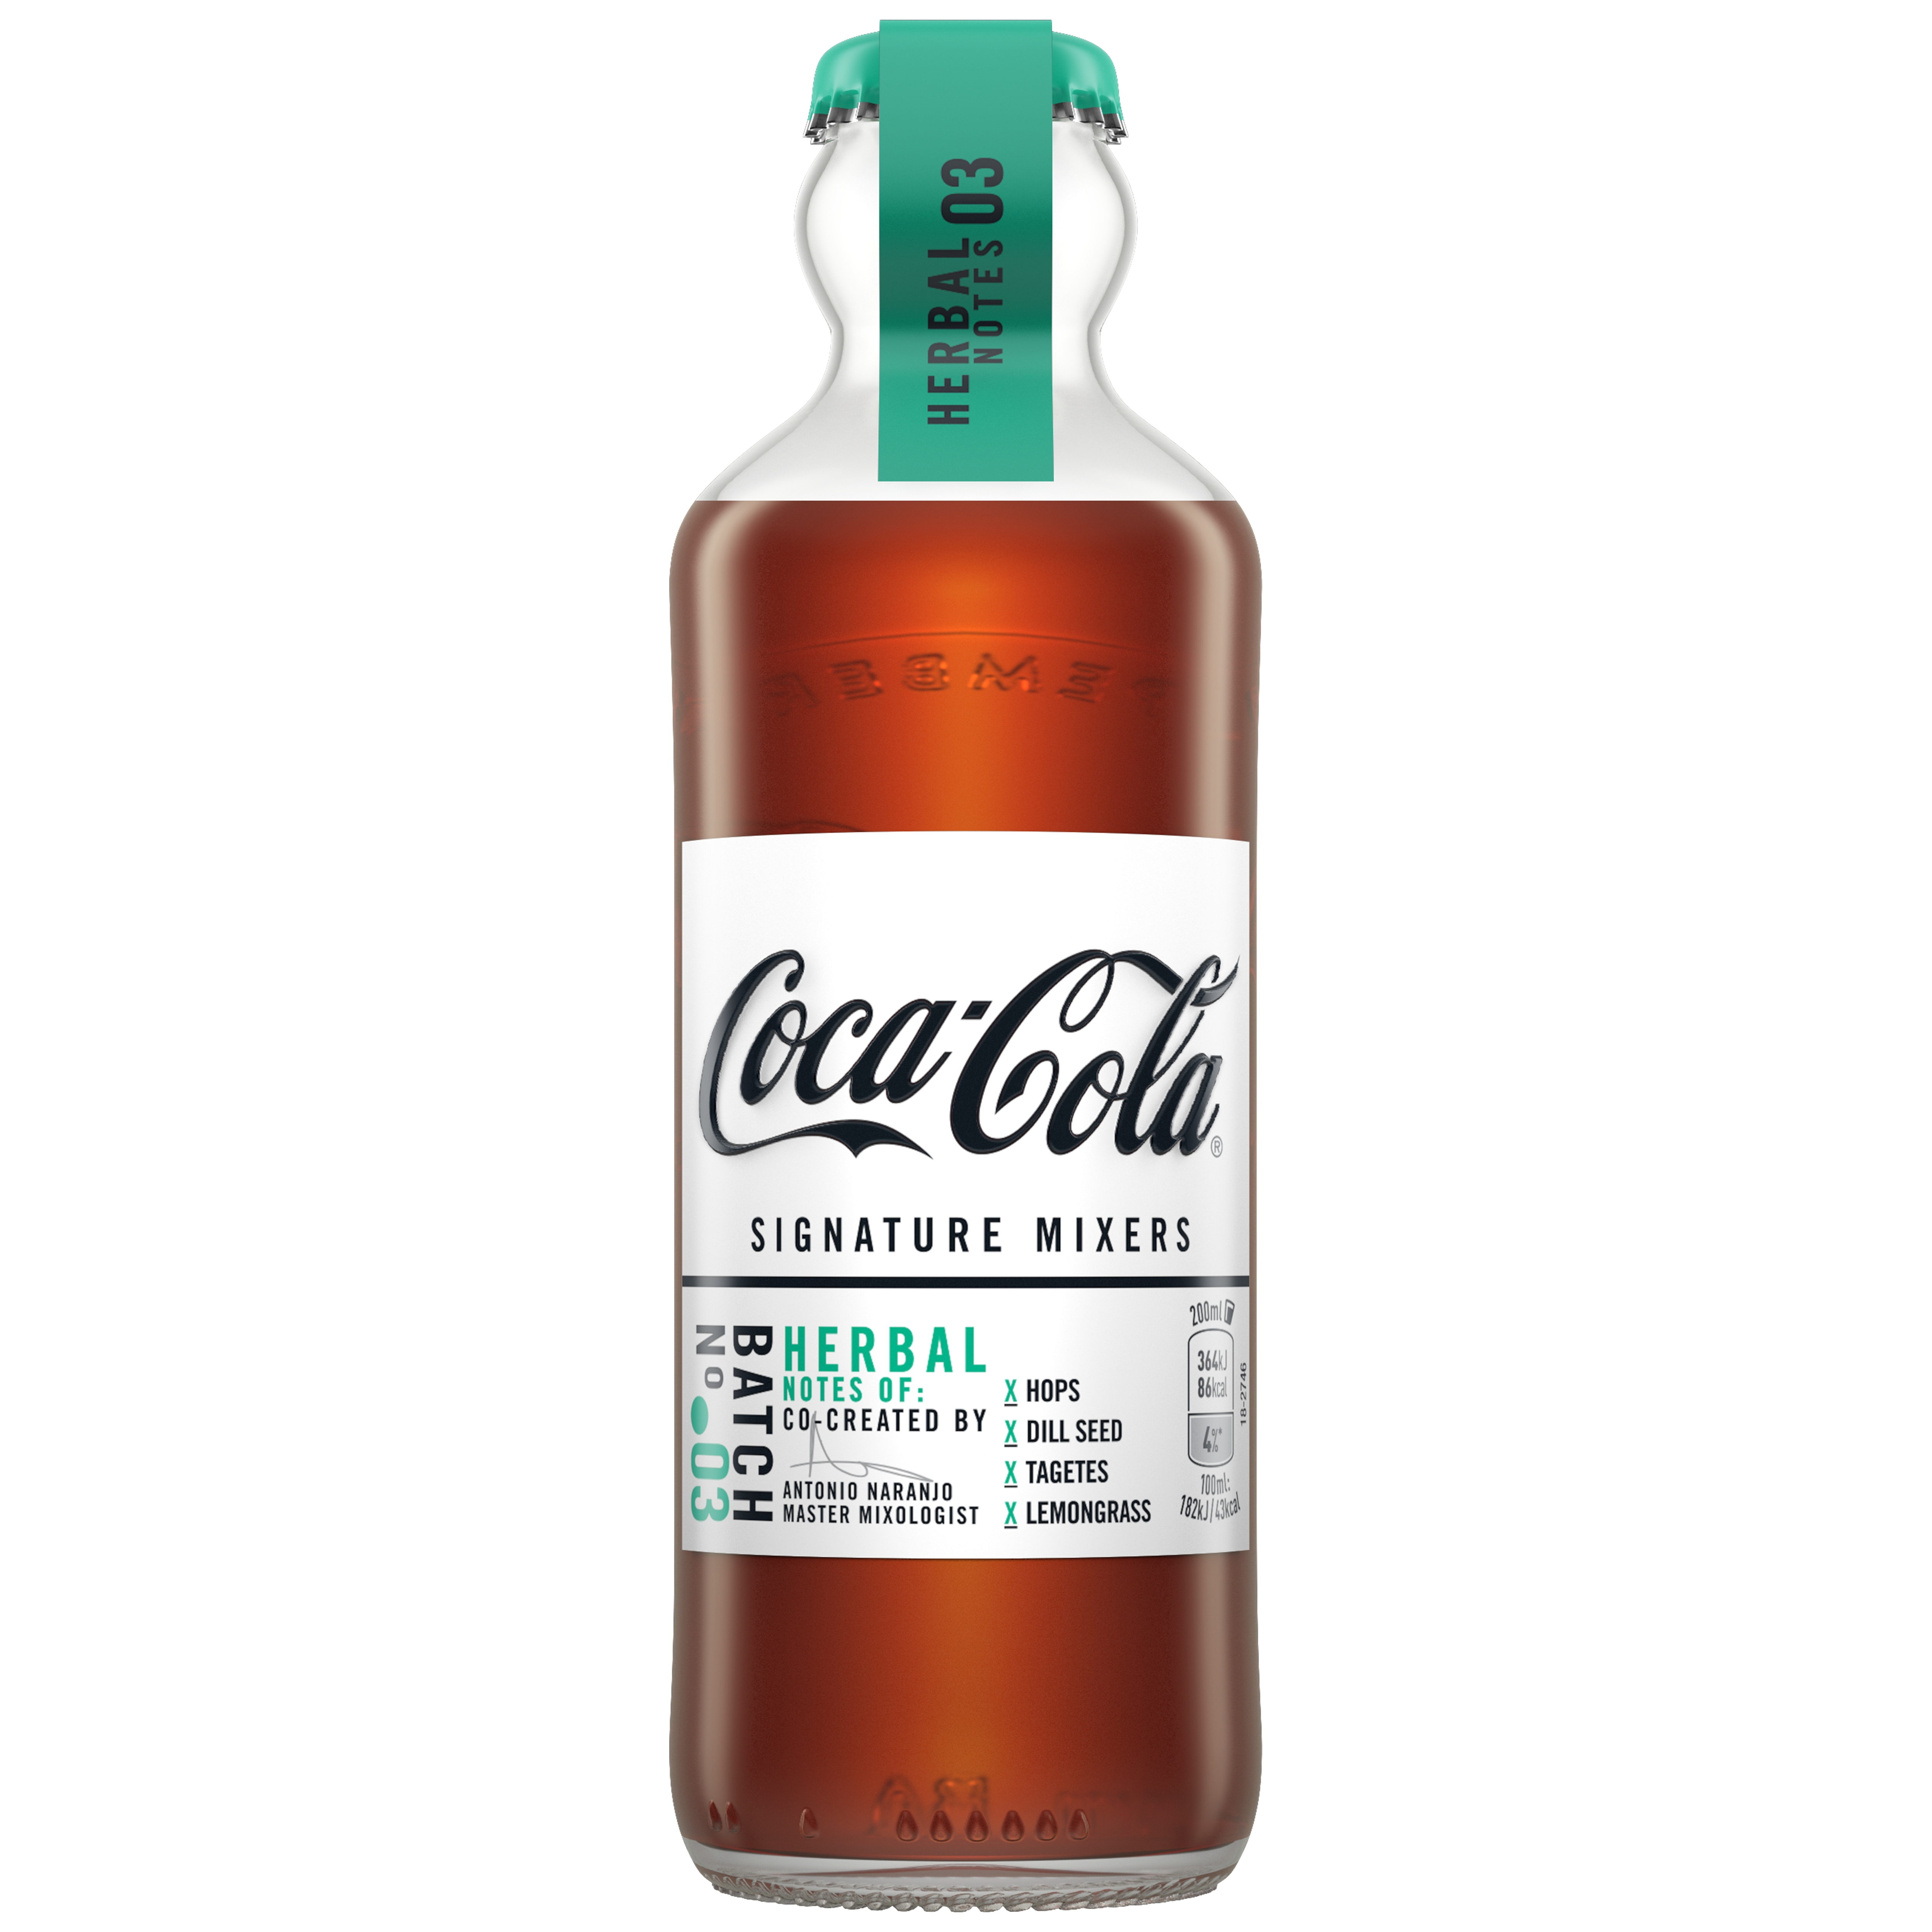 One of the flavours is 'Herbal Notes'. Credit: Coca-Cola